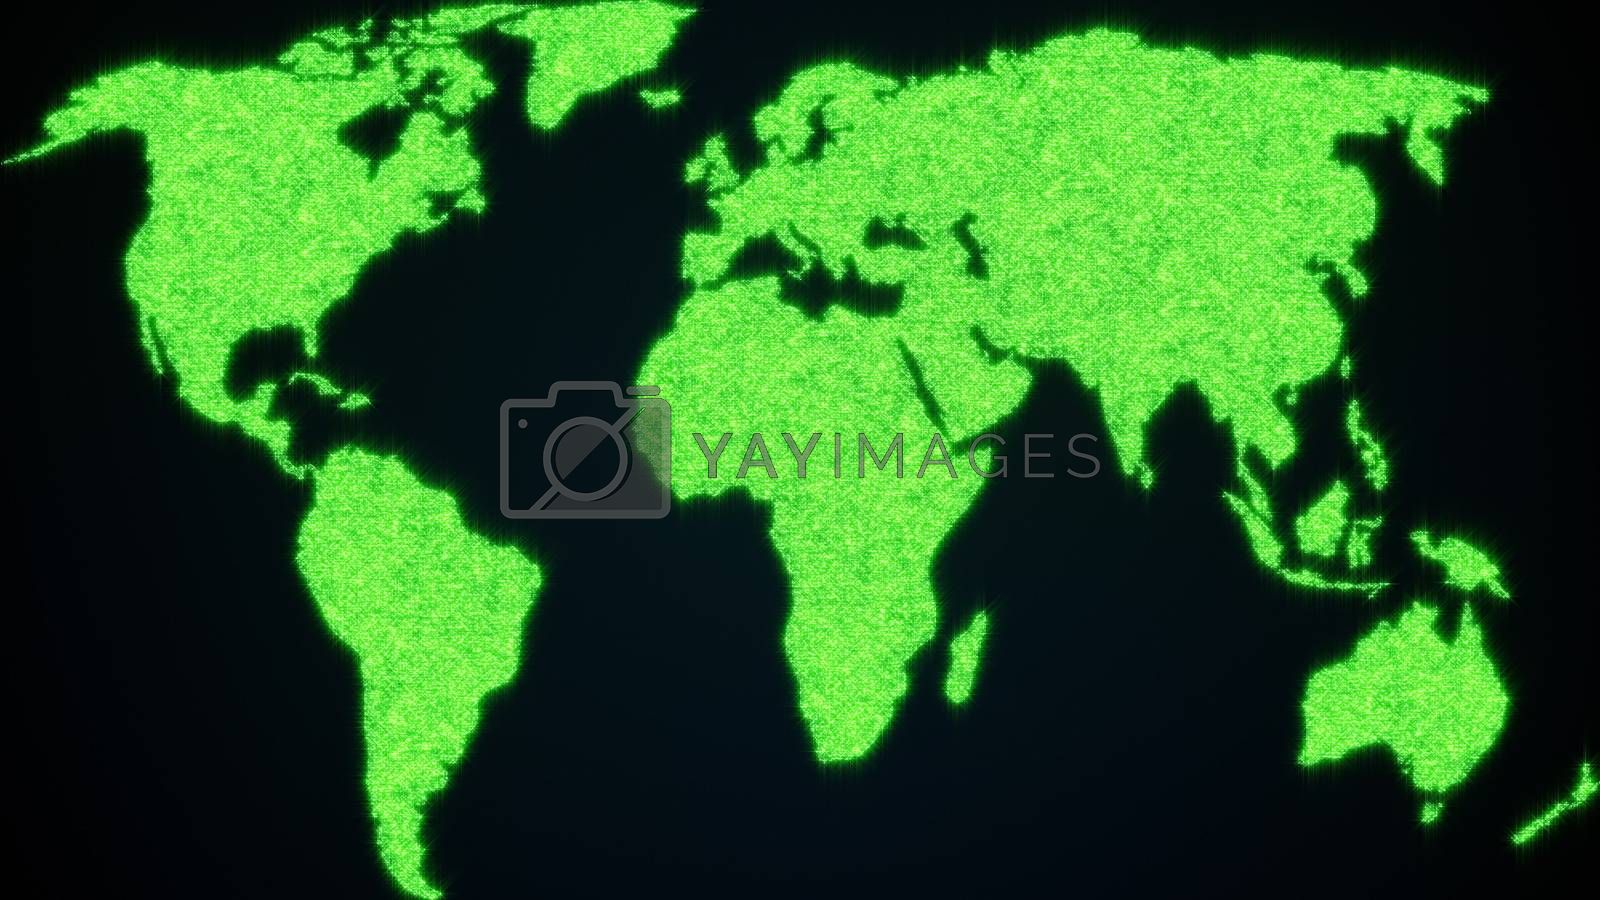 World map from shining blinking particles. 3d rendering of digital planet Earth. Computer generated abstract background